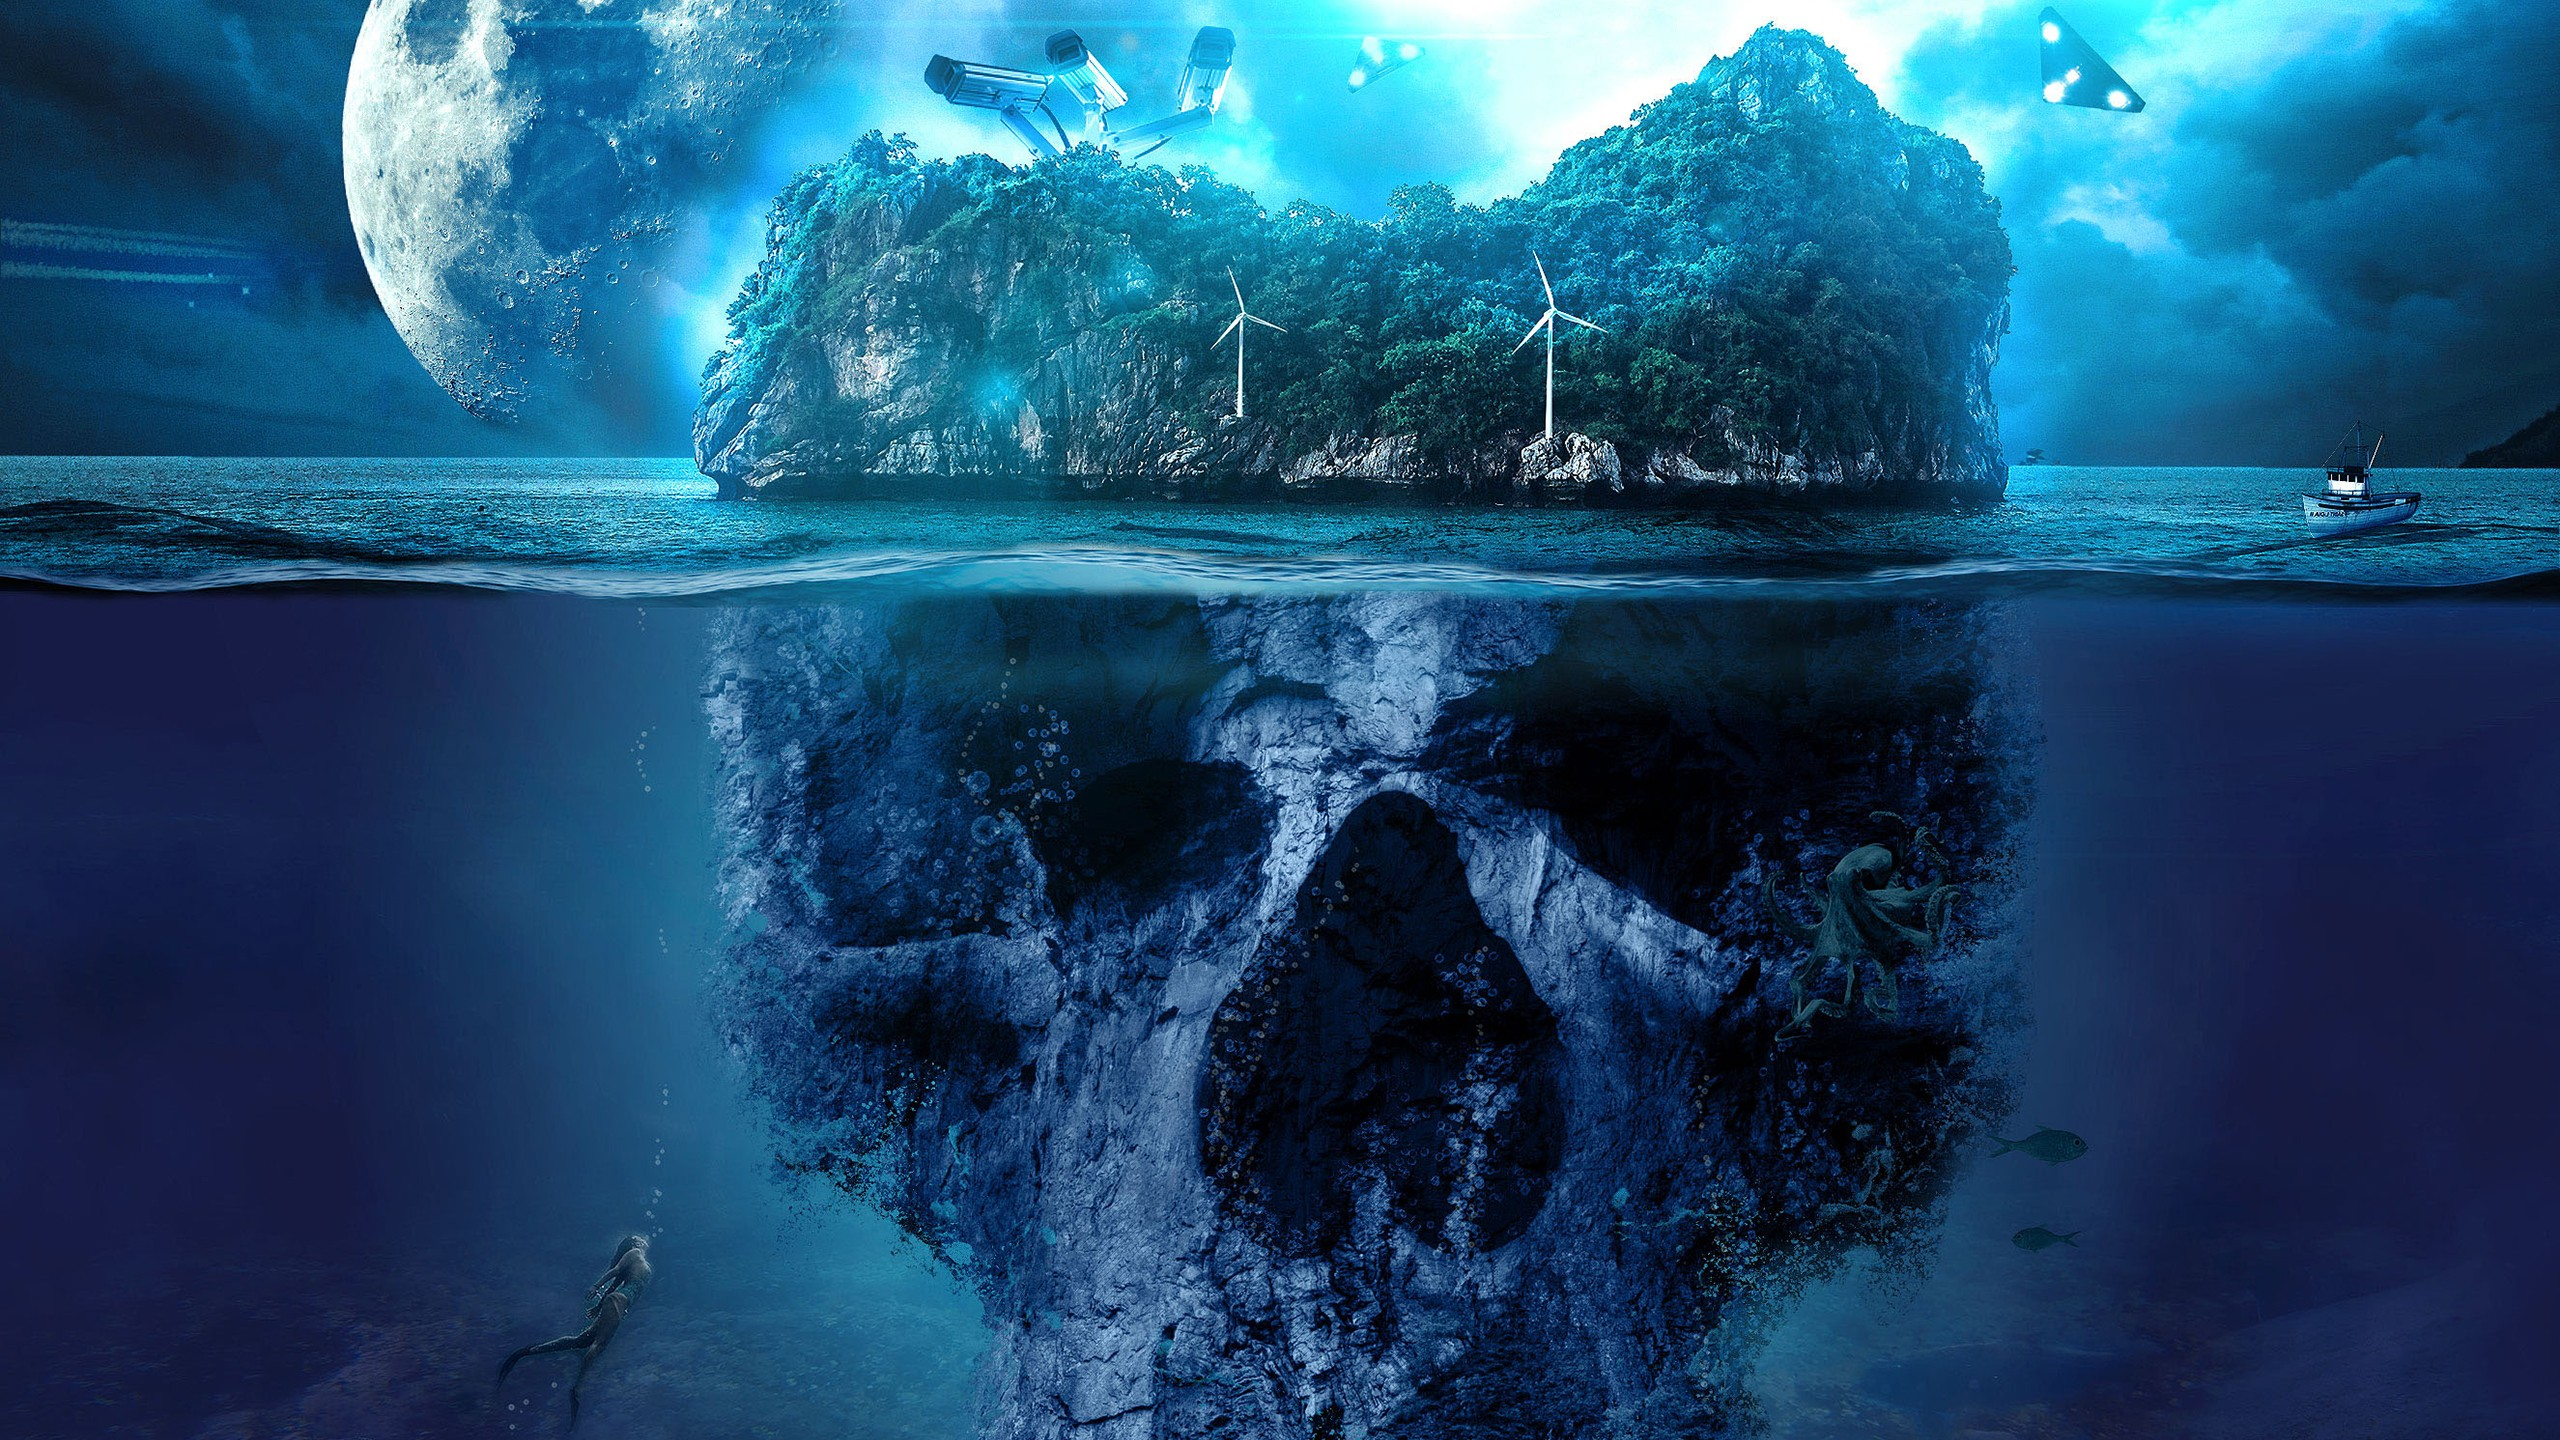 Love Wallpapers Iphone X Mystery Skull Island Wallpapers Hd Wallpapers Id 27263